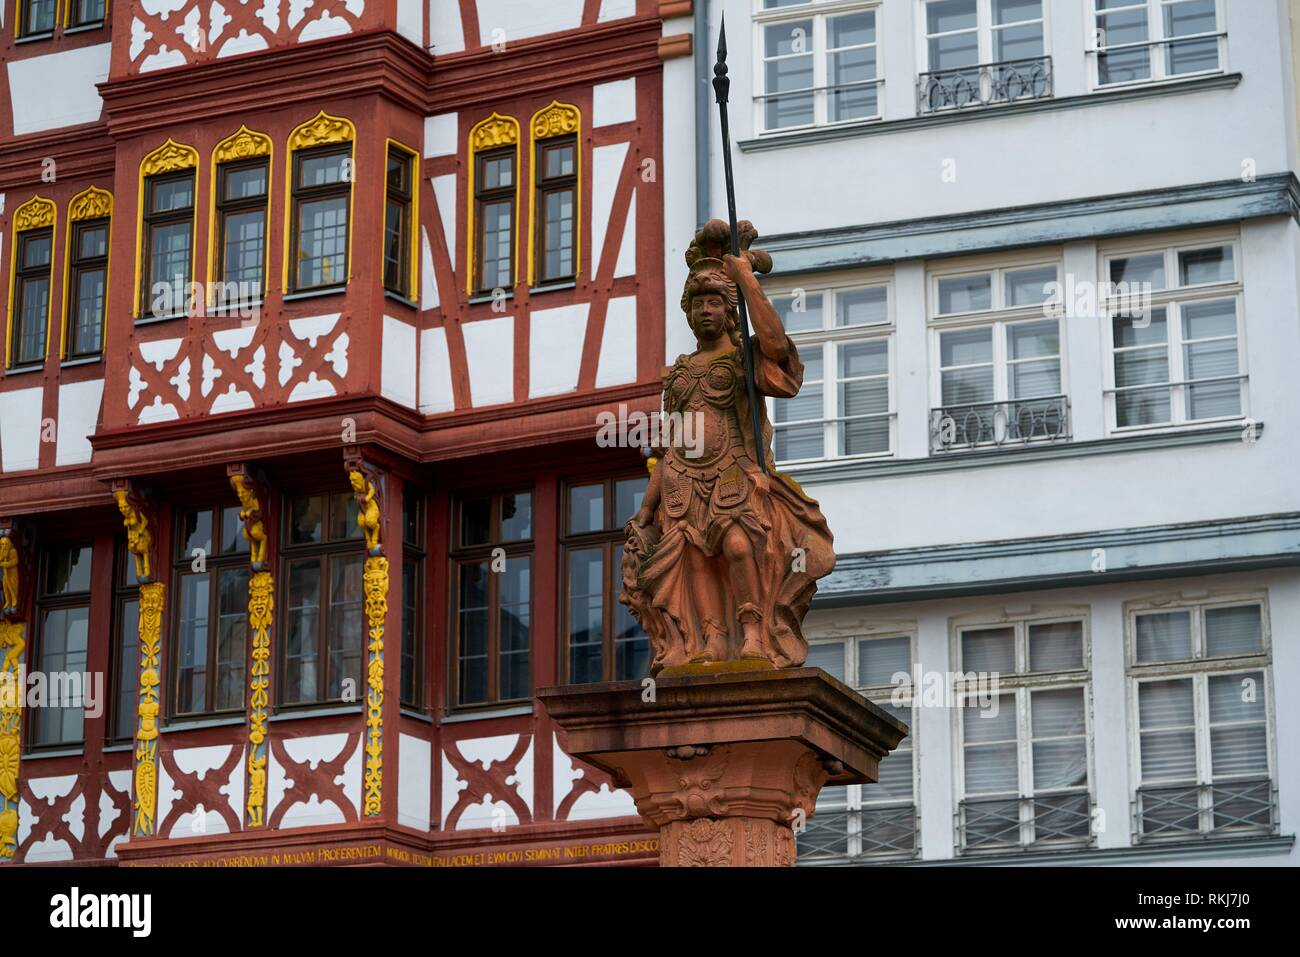 Frankfurt Justitia Lady Justice statue in Romerberg square of Germany. - Stock Image